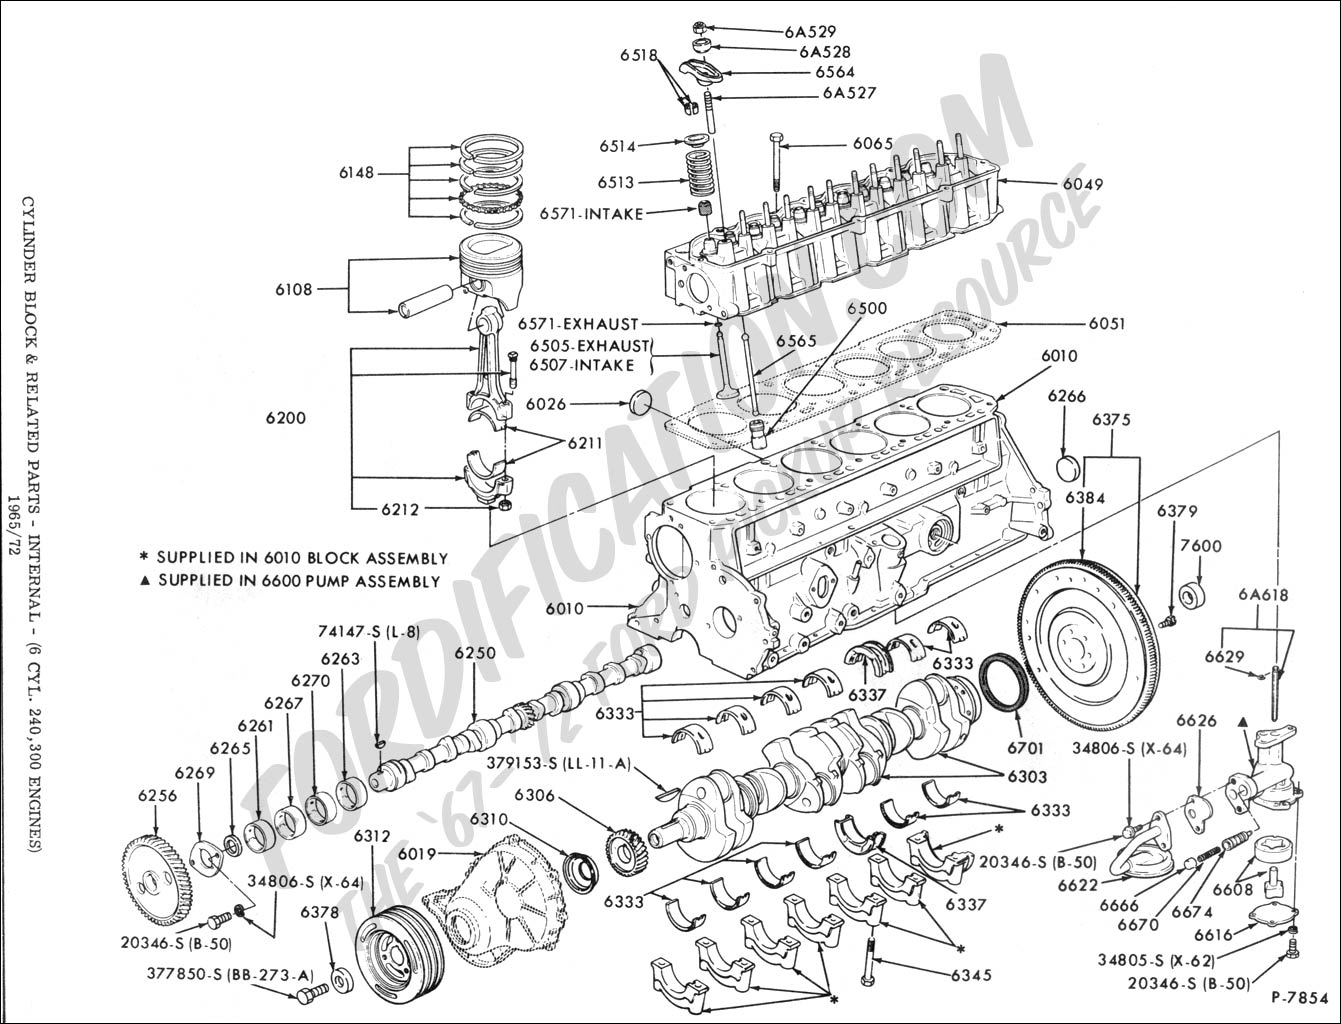 1993 chevy s10 stereo wiring diagram adventureworks database 93 f150 radio 03 dodge 84 ford f 150